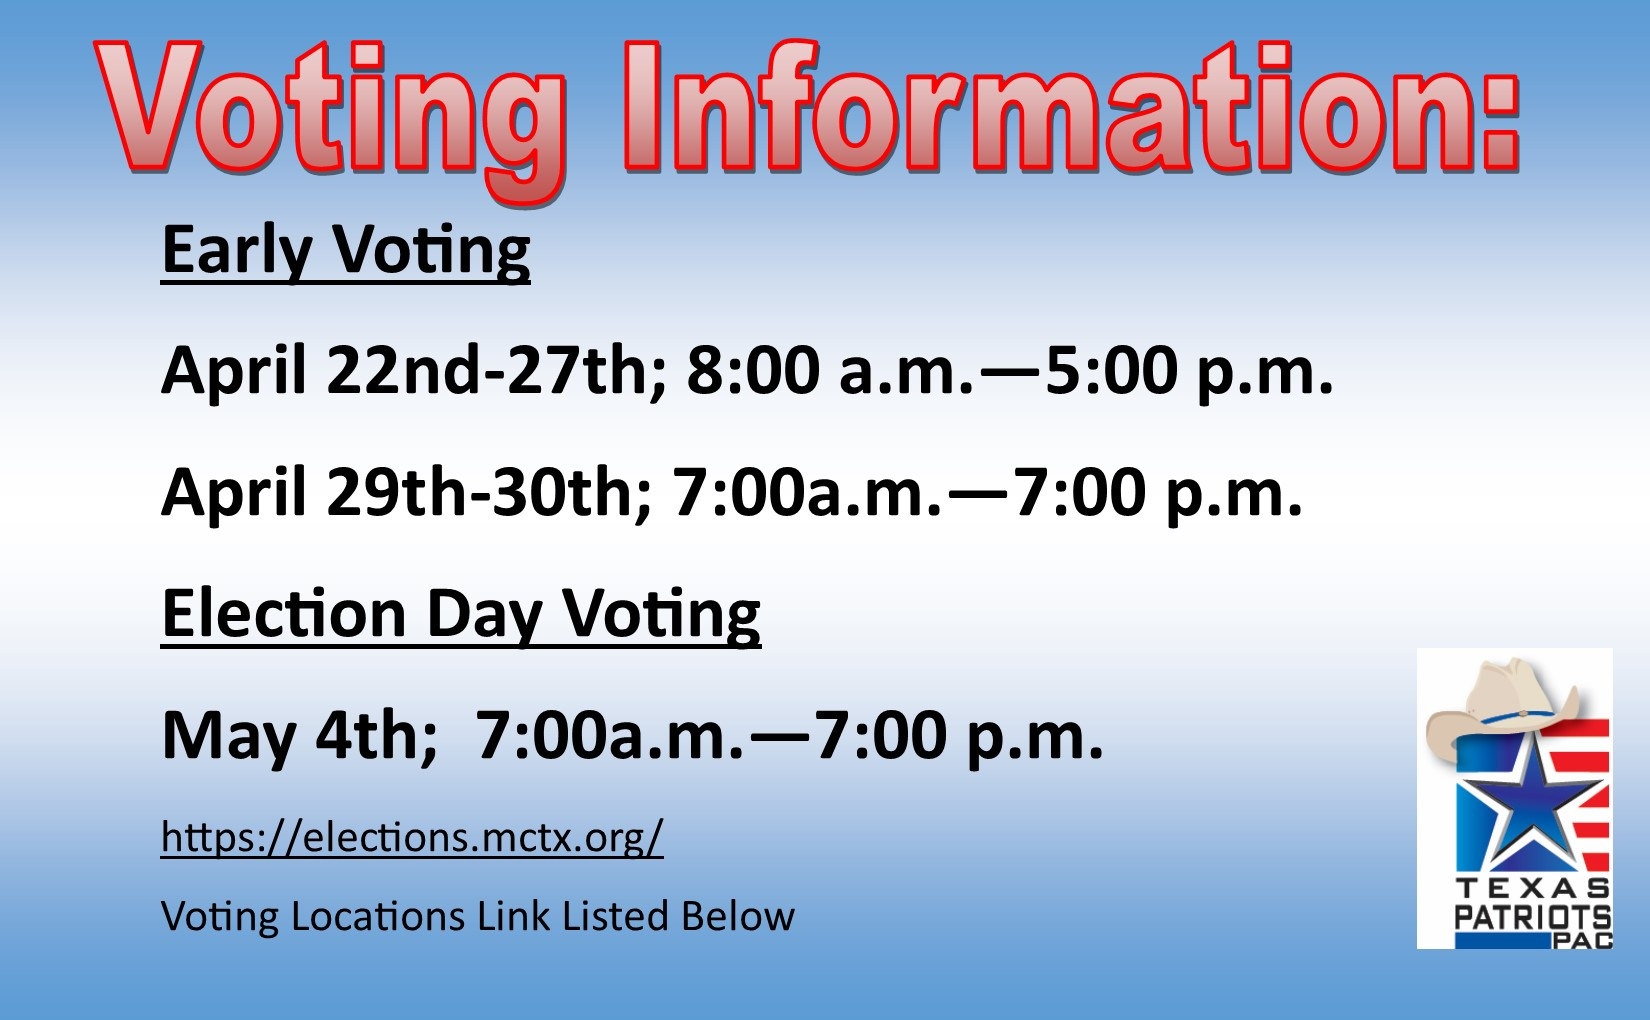 voter information slides.jpg